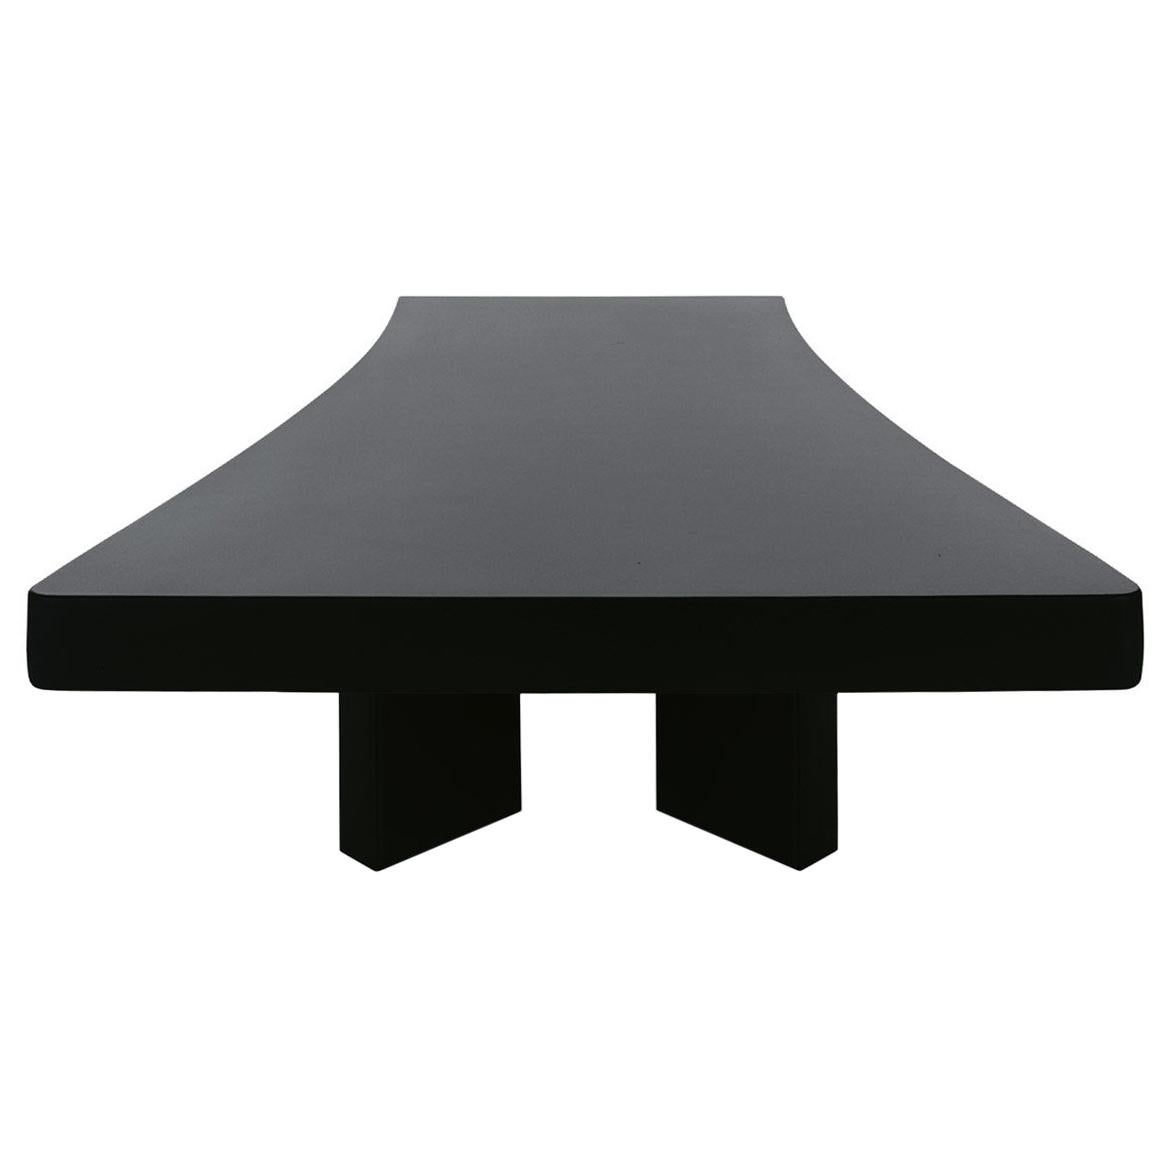 Charlotte Perriand 515 Plana Coffee Table, Black Stained Wood